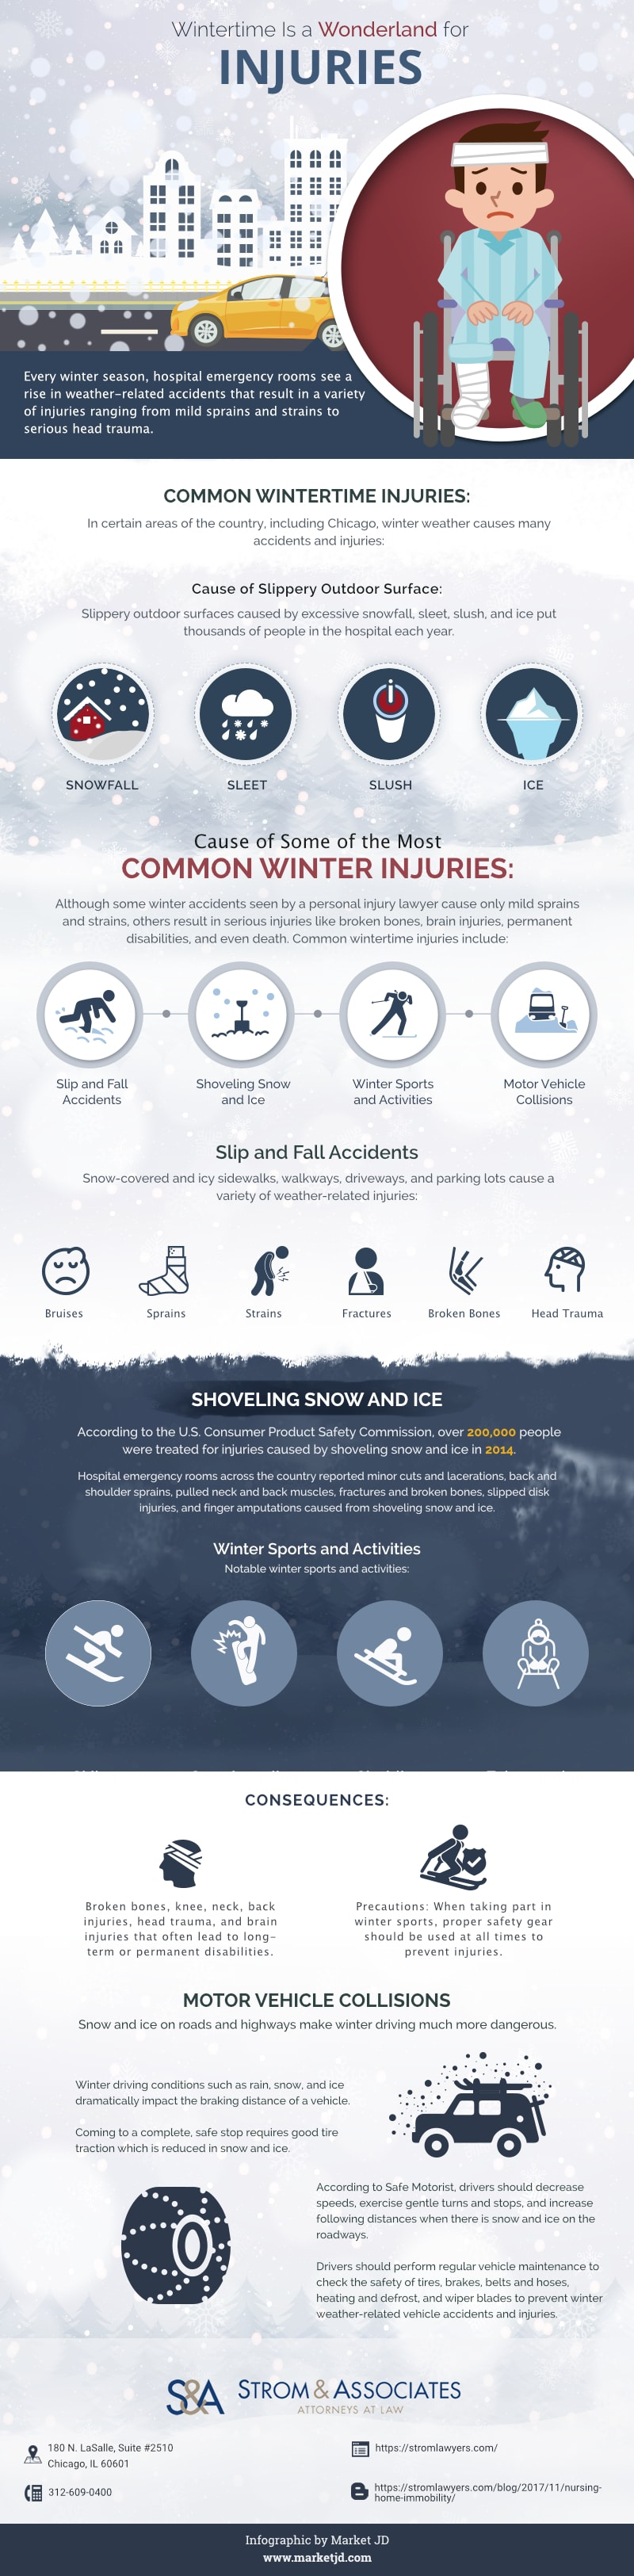 Wintertime injuries infographic